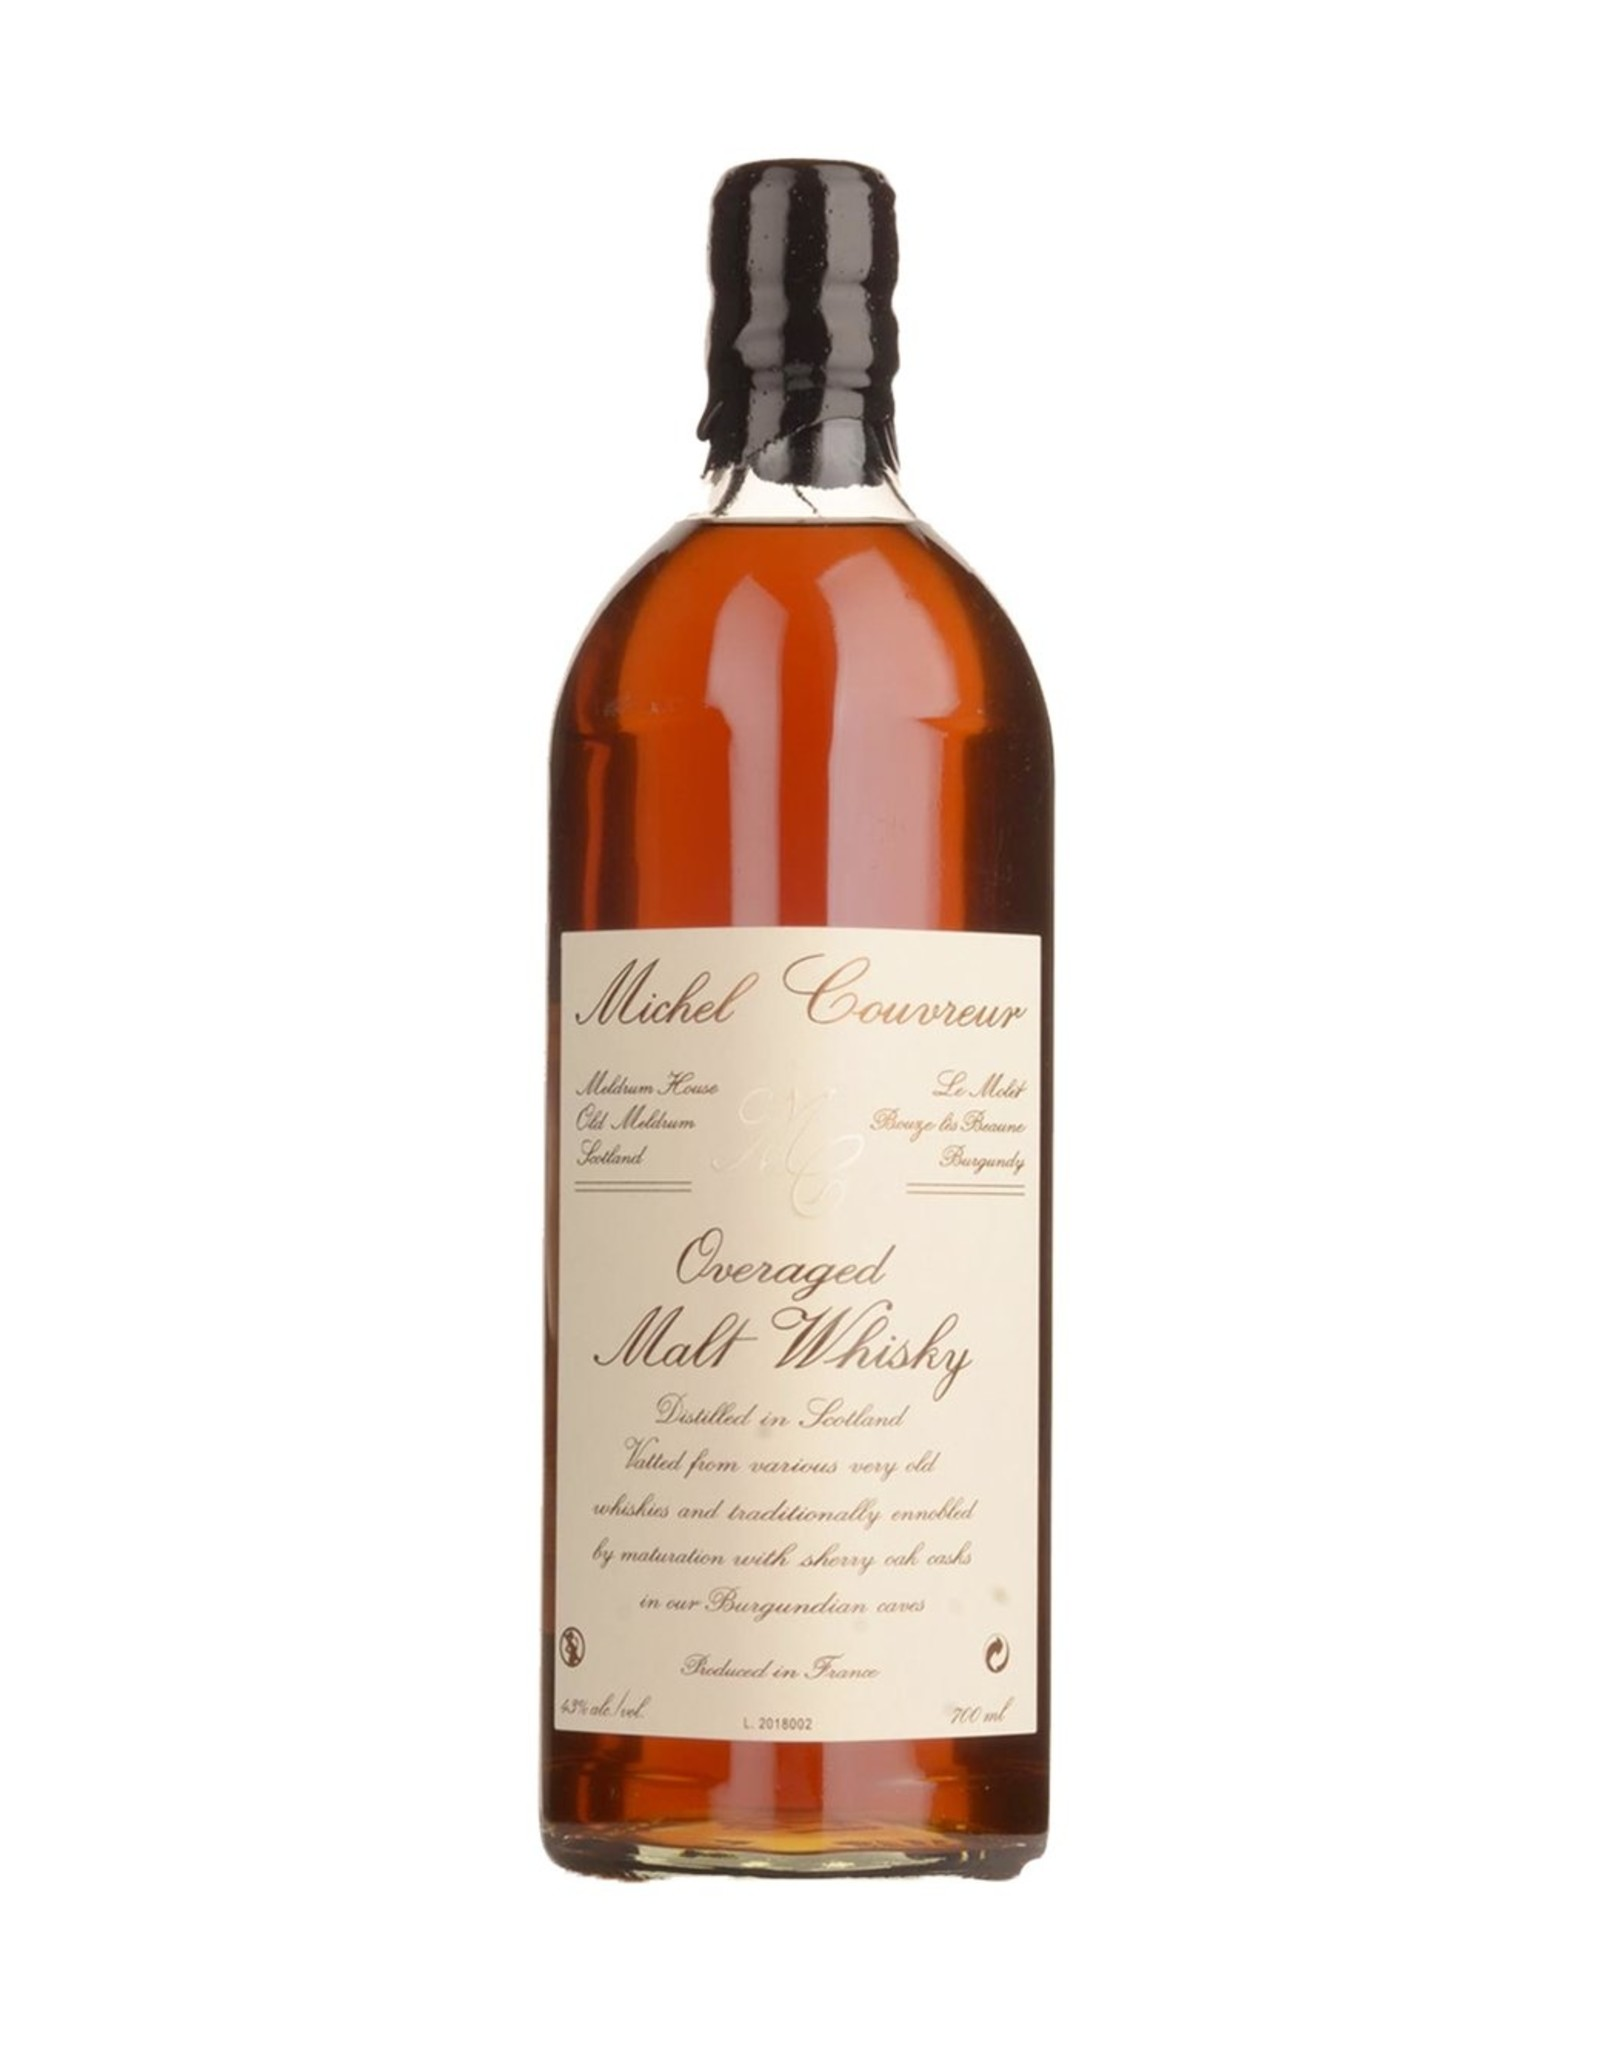 Michel Couvreur Overaged 12 Year Old Malt Whiskey